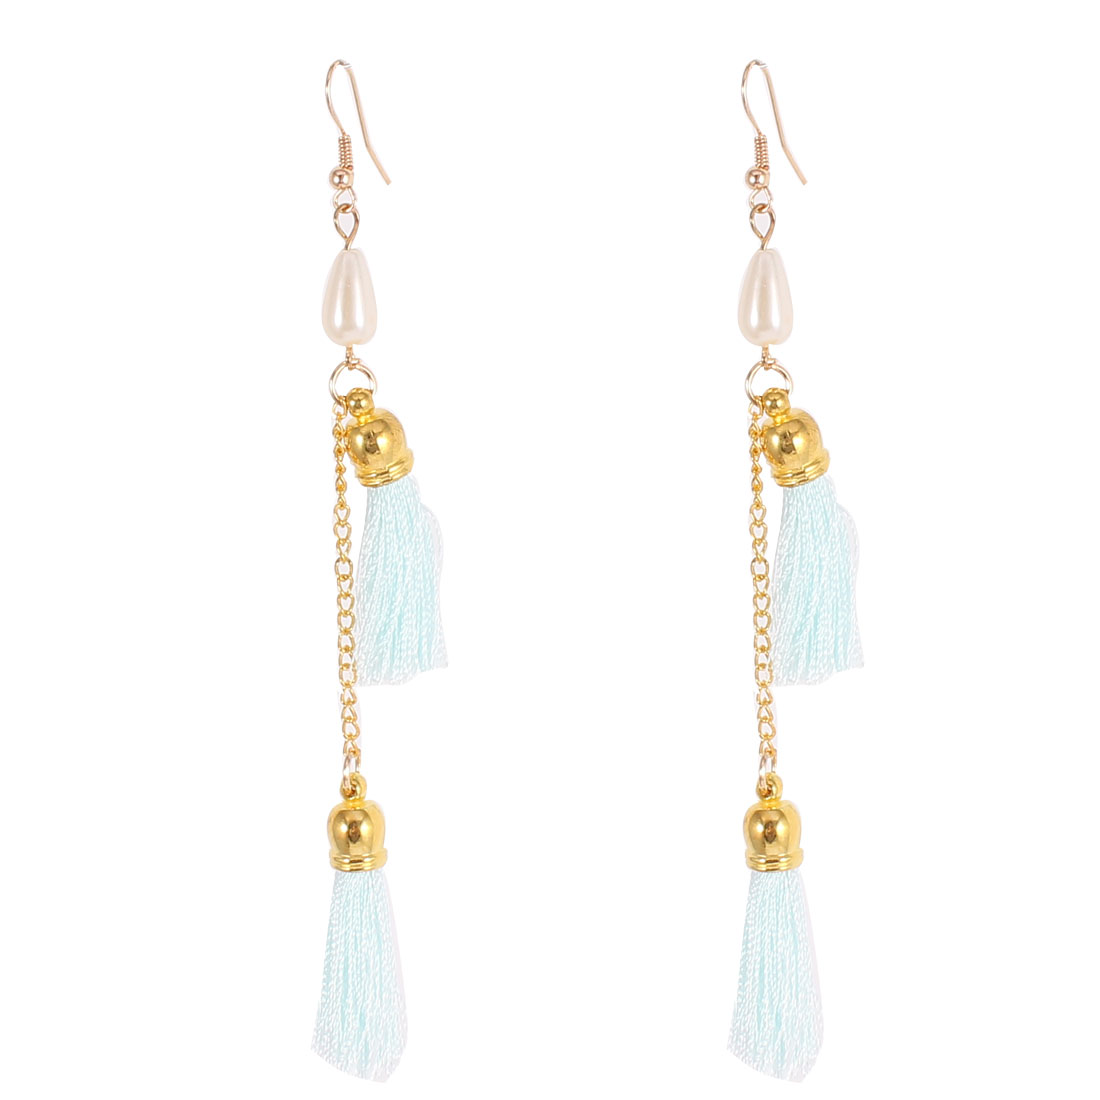 Pair Light Blue Imitation Pearl Tassel Dangling Fish Hook Style Ear Drop Decoration Earrings for Lady